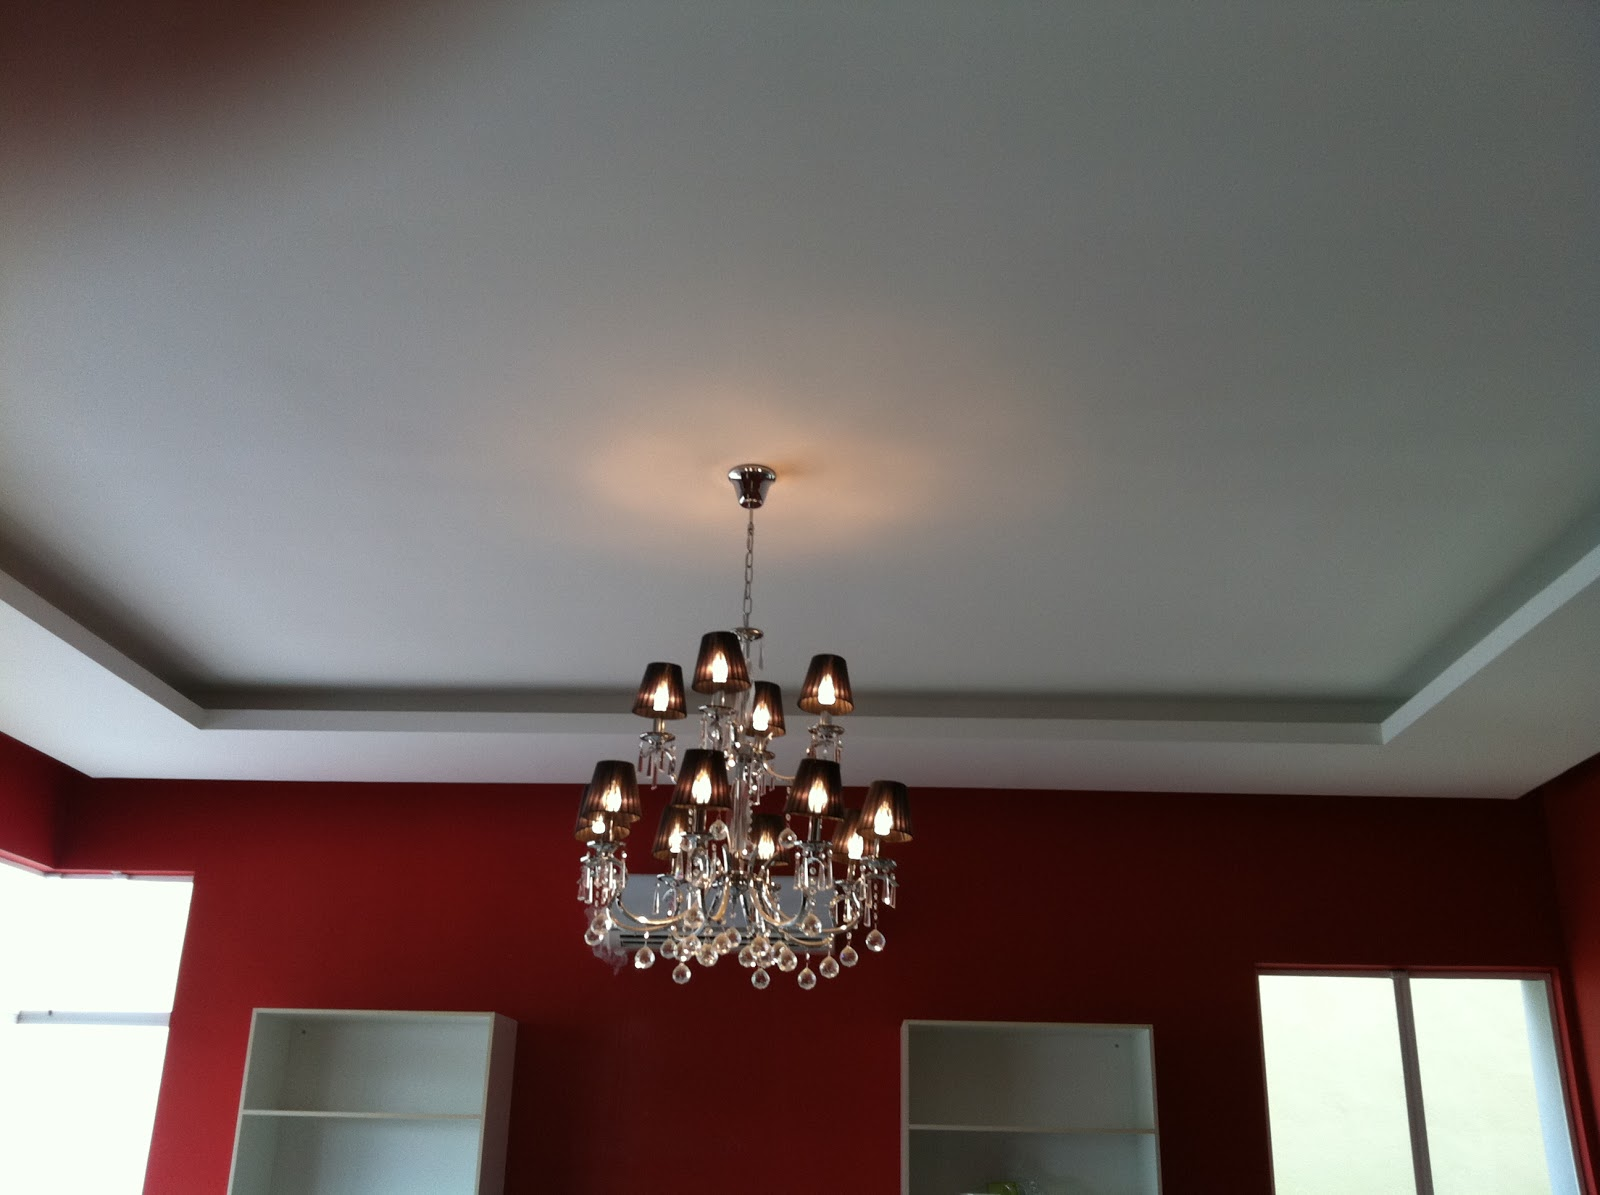 Uniceiling add elegance and value to your home with for Plaster ceiling design price